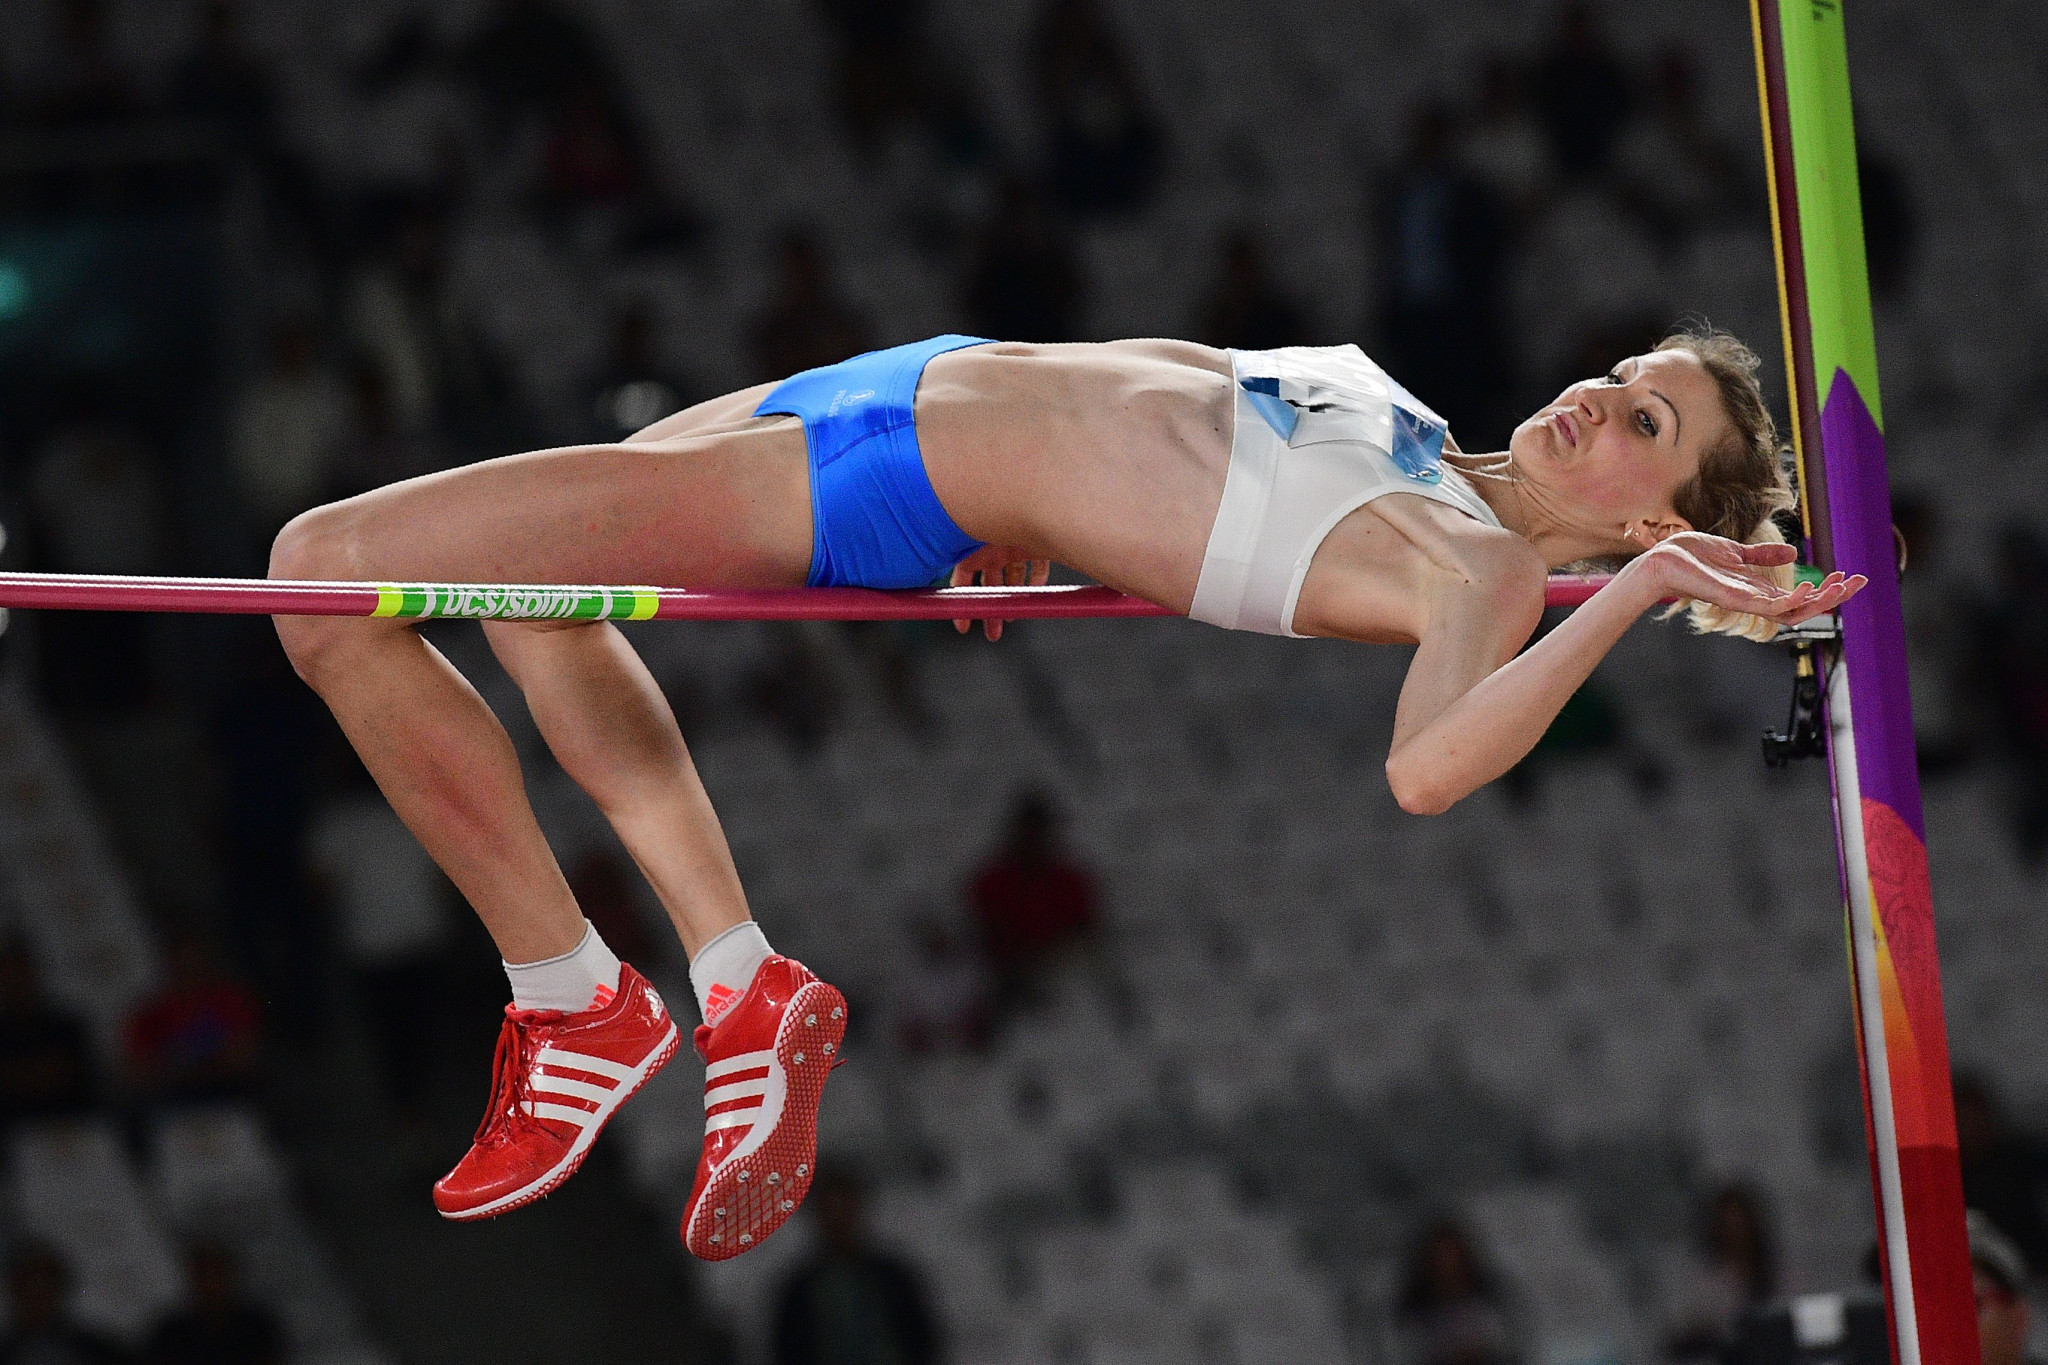 Svetlana Radzivil cleared a Games record height of 1.96m to win the women's high jump ©Getty Images